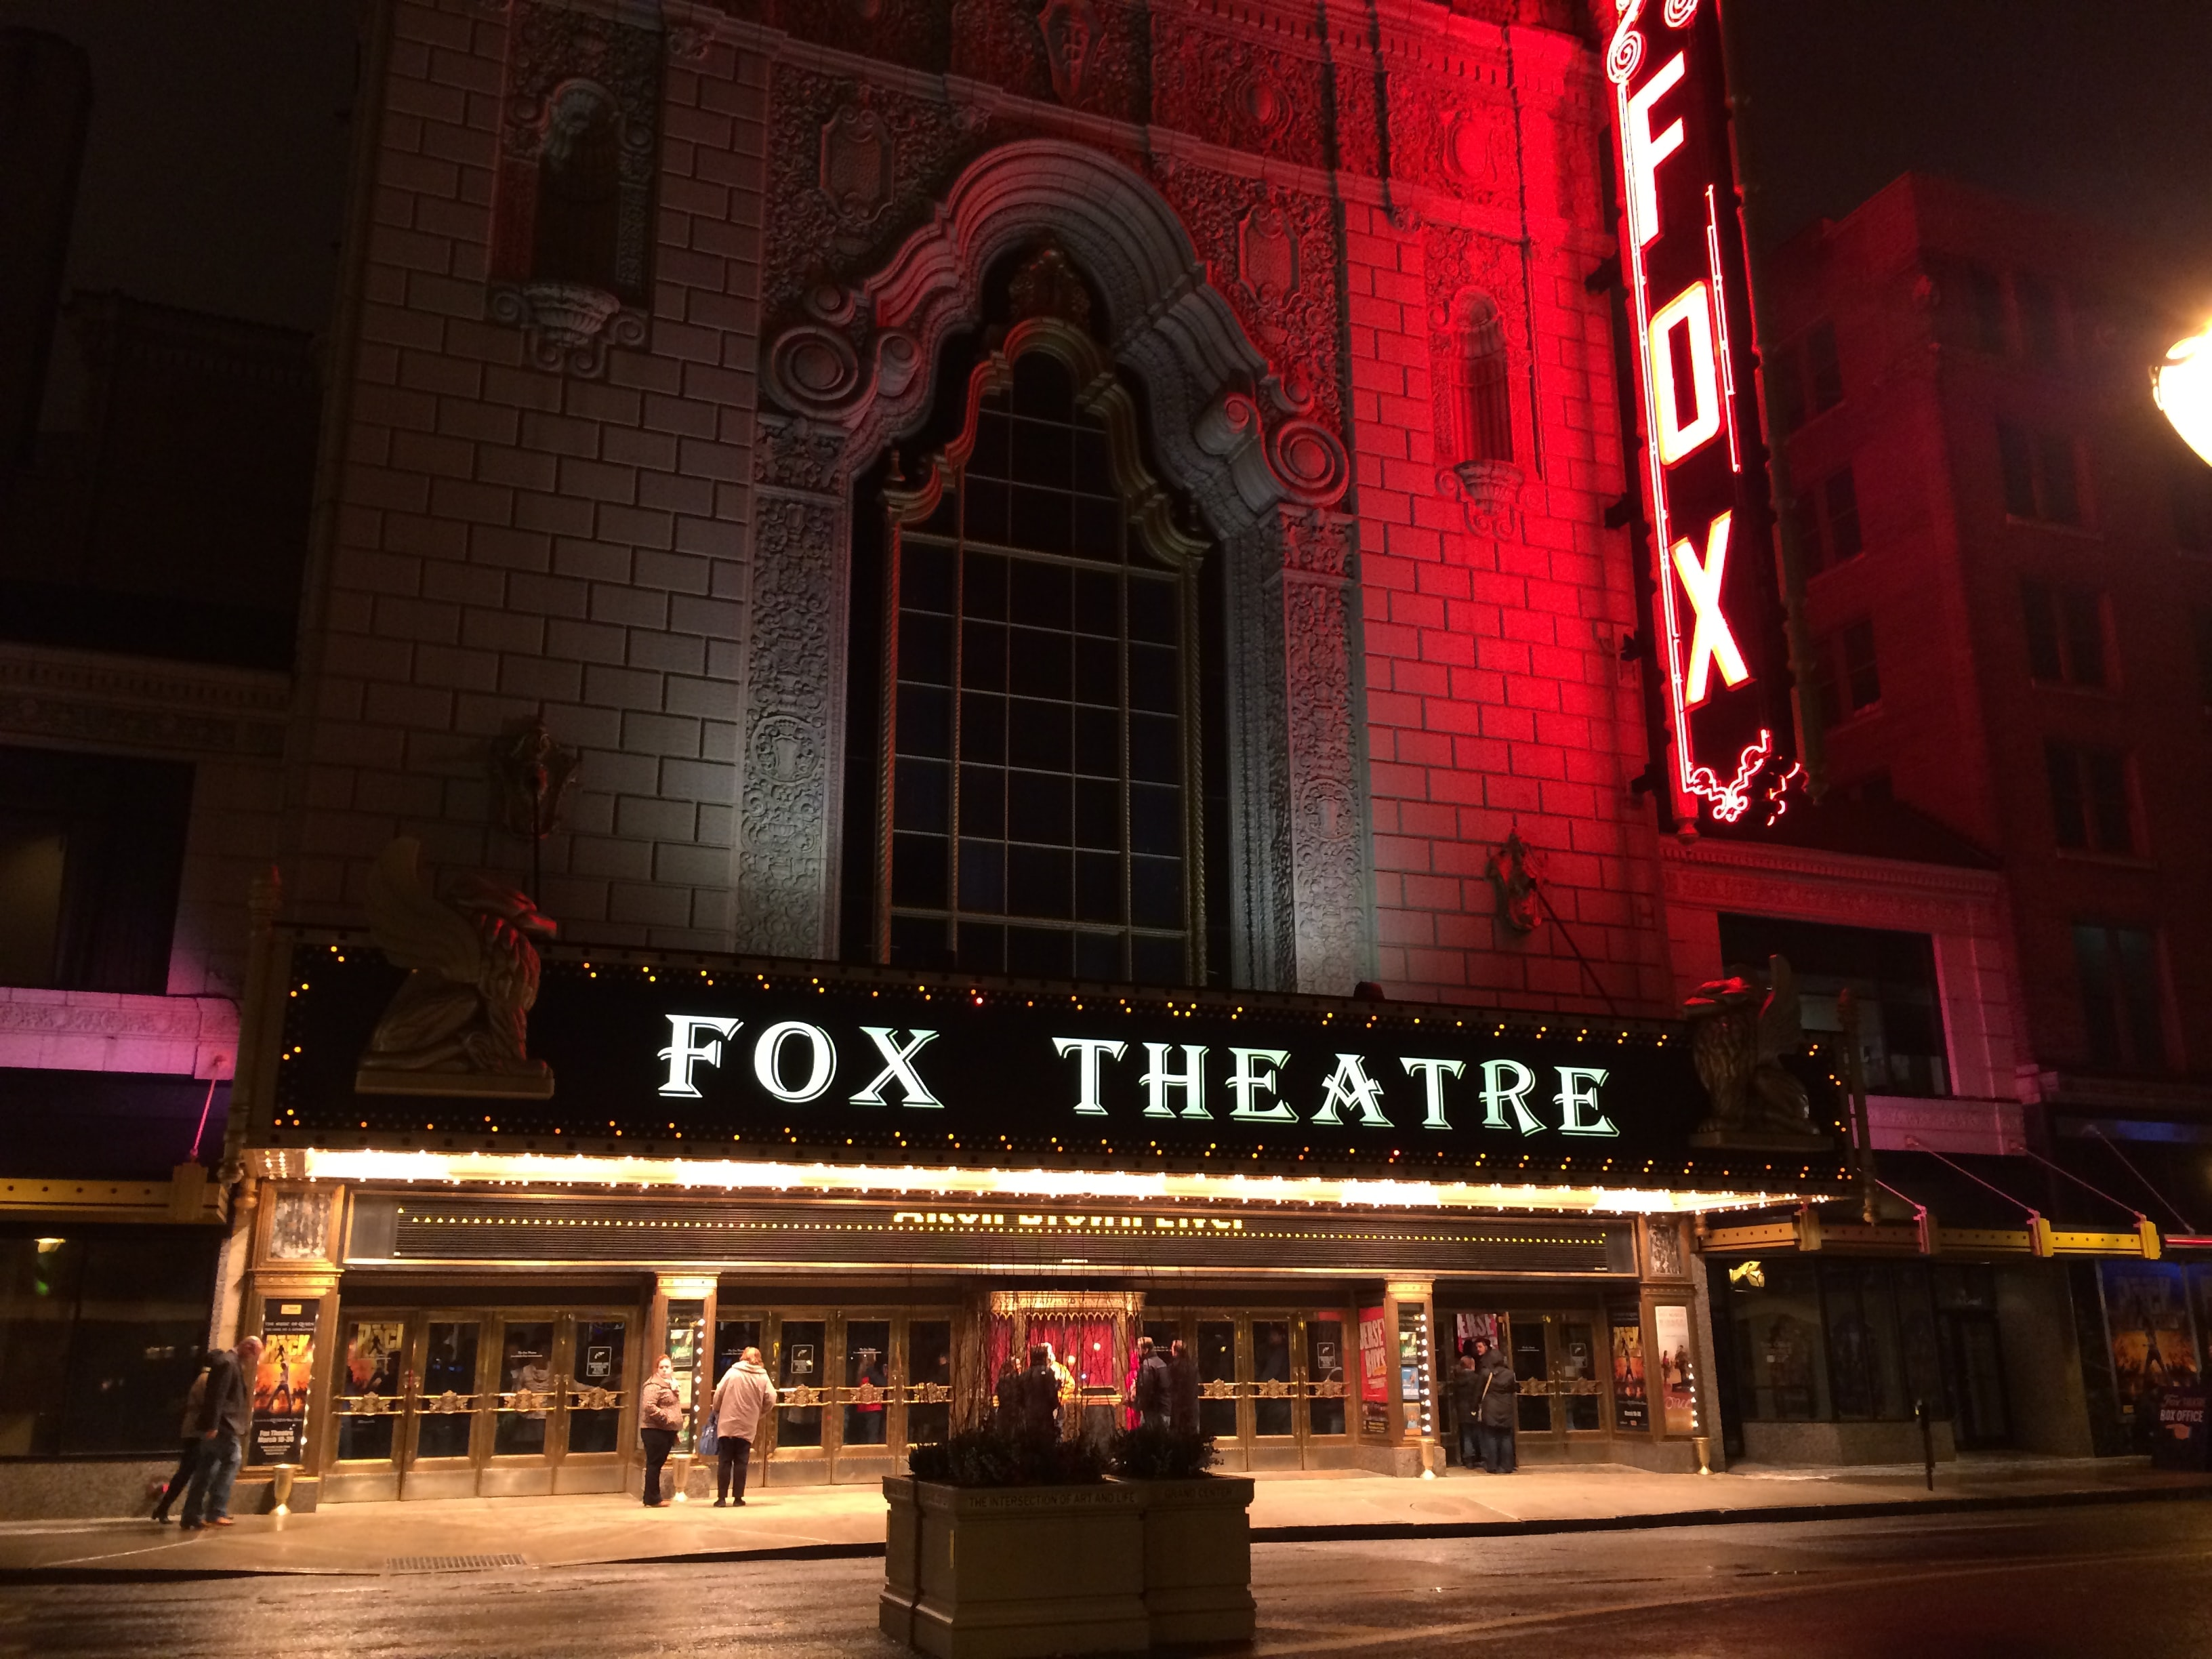 Fox Theatre at nighttime